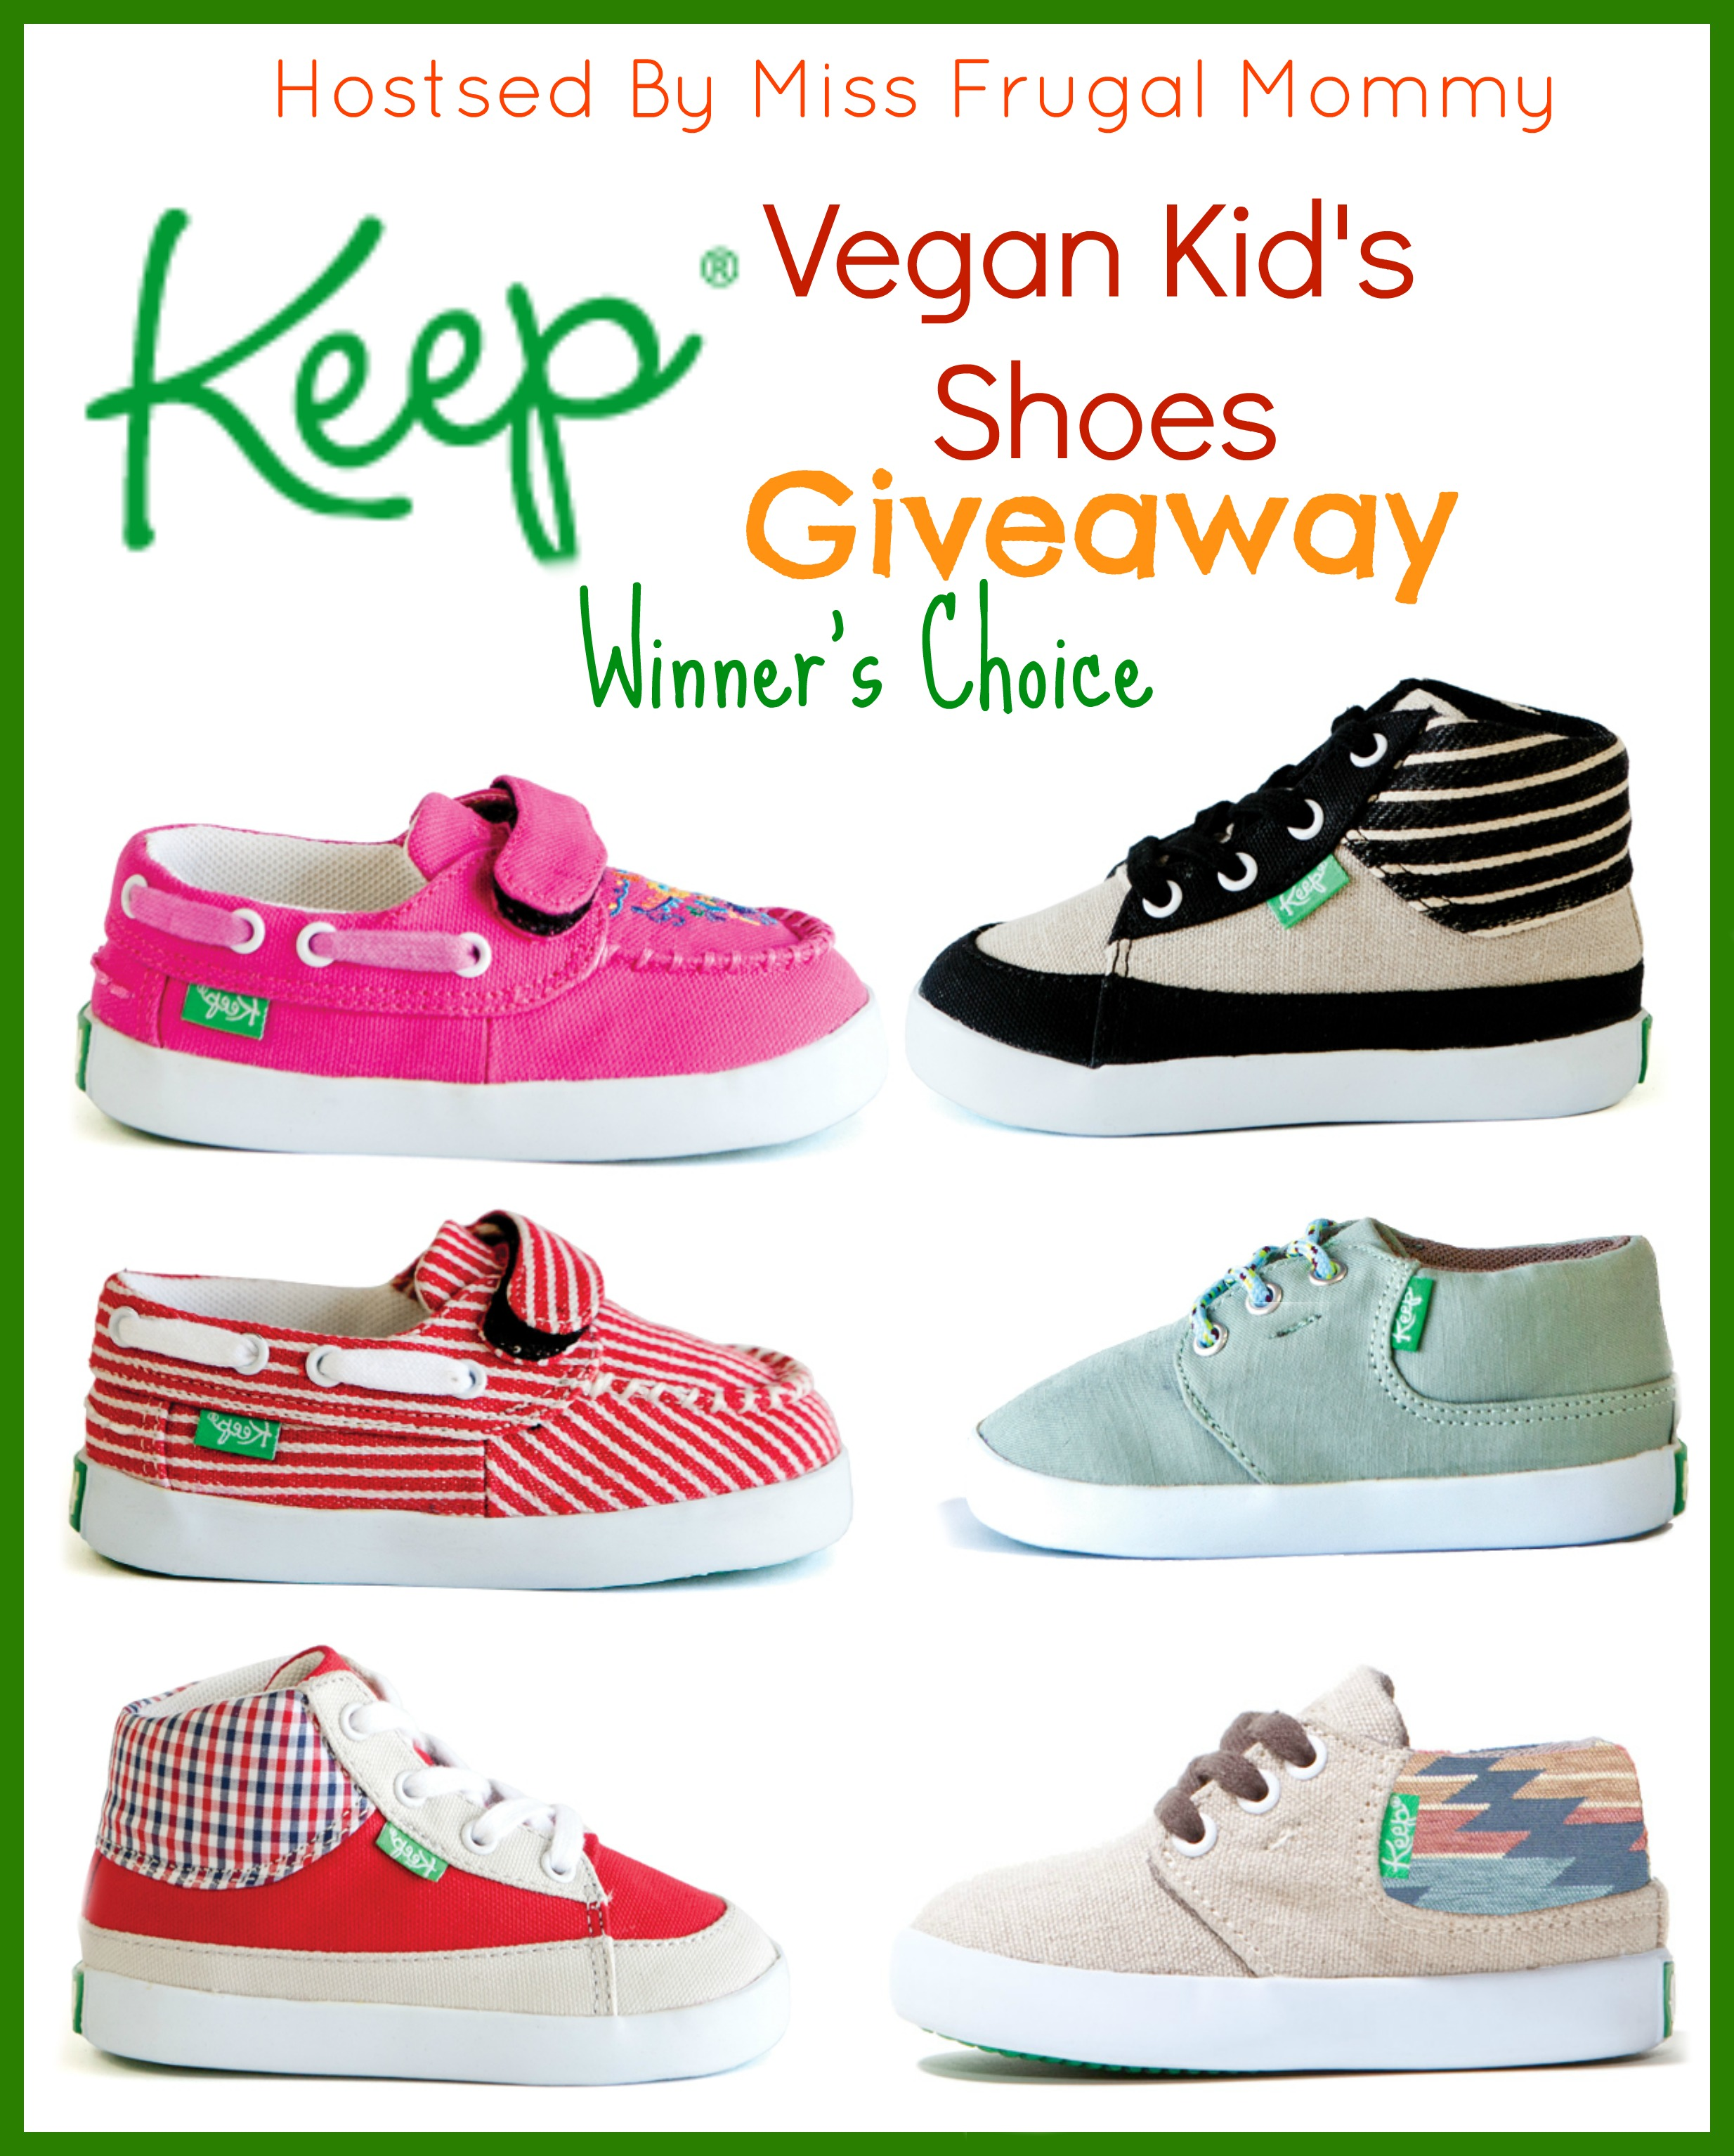 http://missfrugalmommy.com/wp-content/uploads/2014/04/Keep-Shoes-Giveaway.jpg